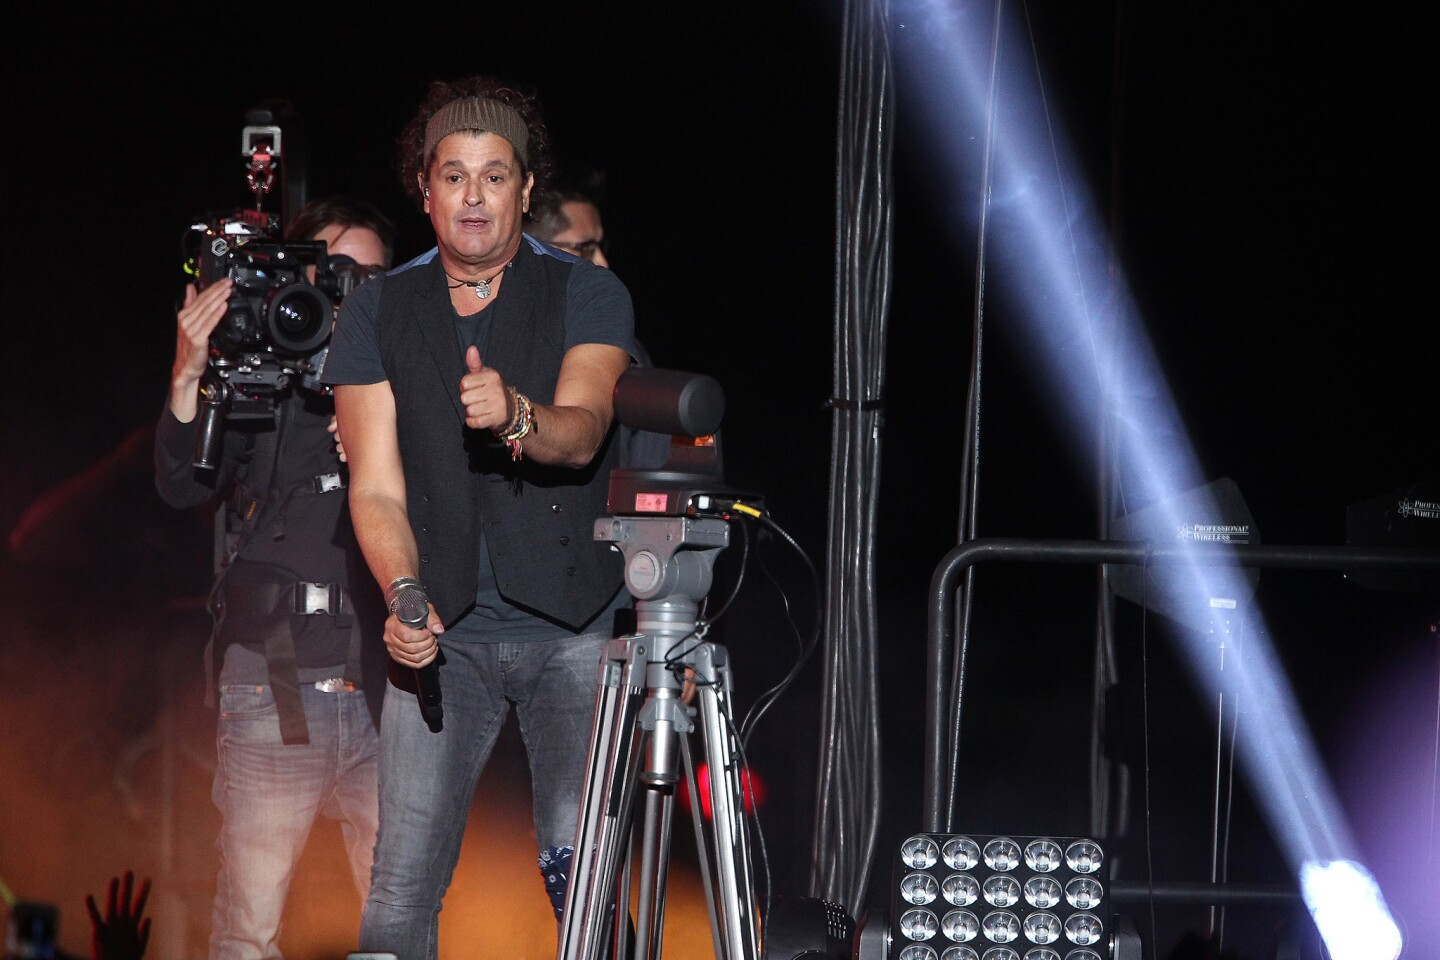 """Carlos Vives performs onstage during his """"Vives Tour 2018"""" at The Forum on September 29, 2018 in Inglewood, CA. (Photo by: Art. Garcia/DDPixels)"""